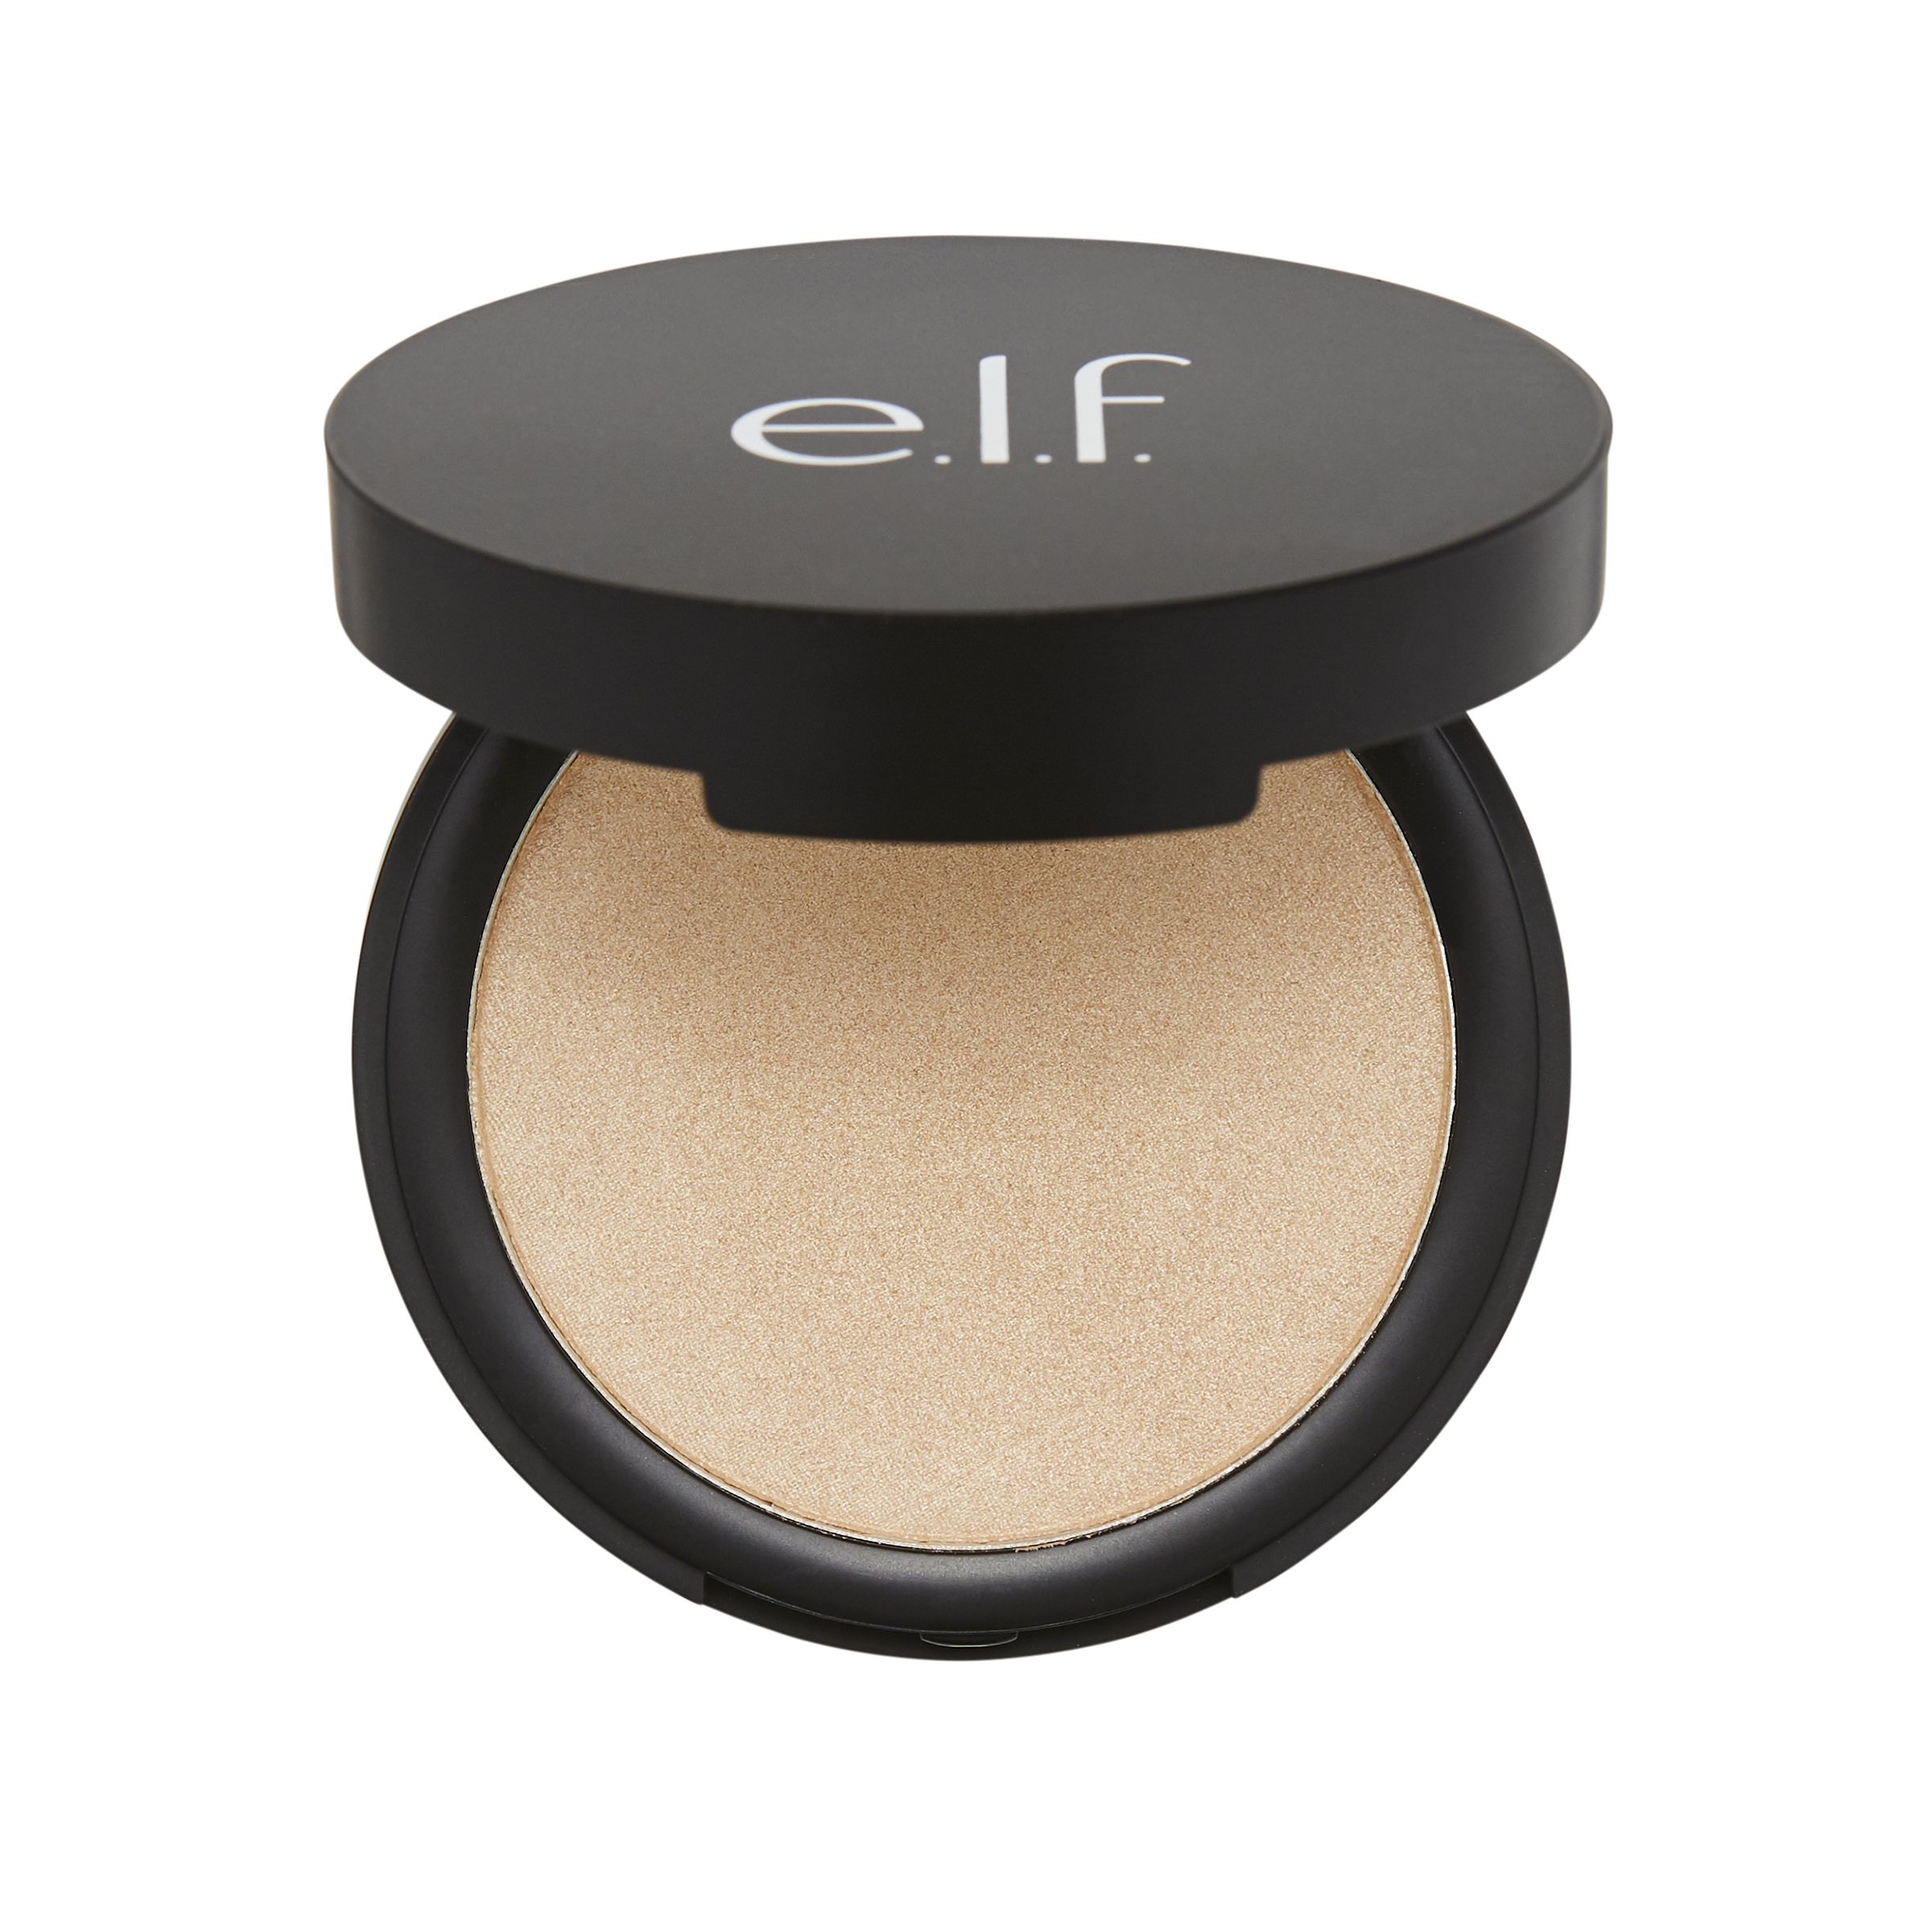 e.l.f. Cosmetics Shimmer Highlighting Powder, Starlight Glow